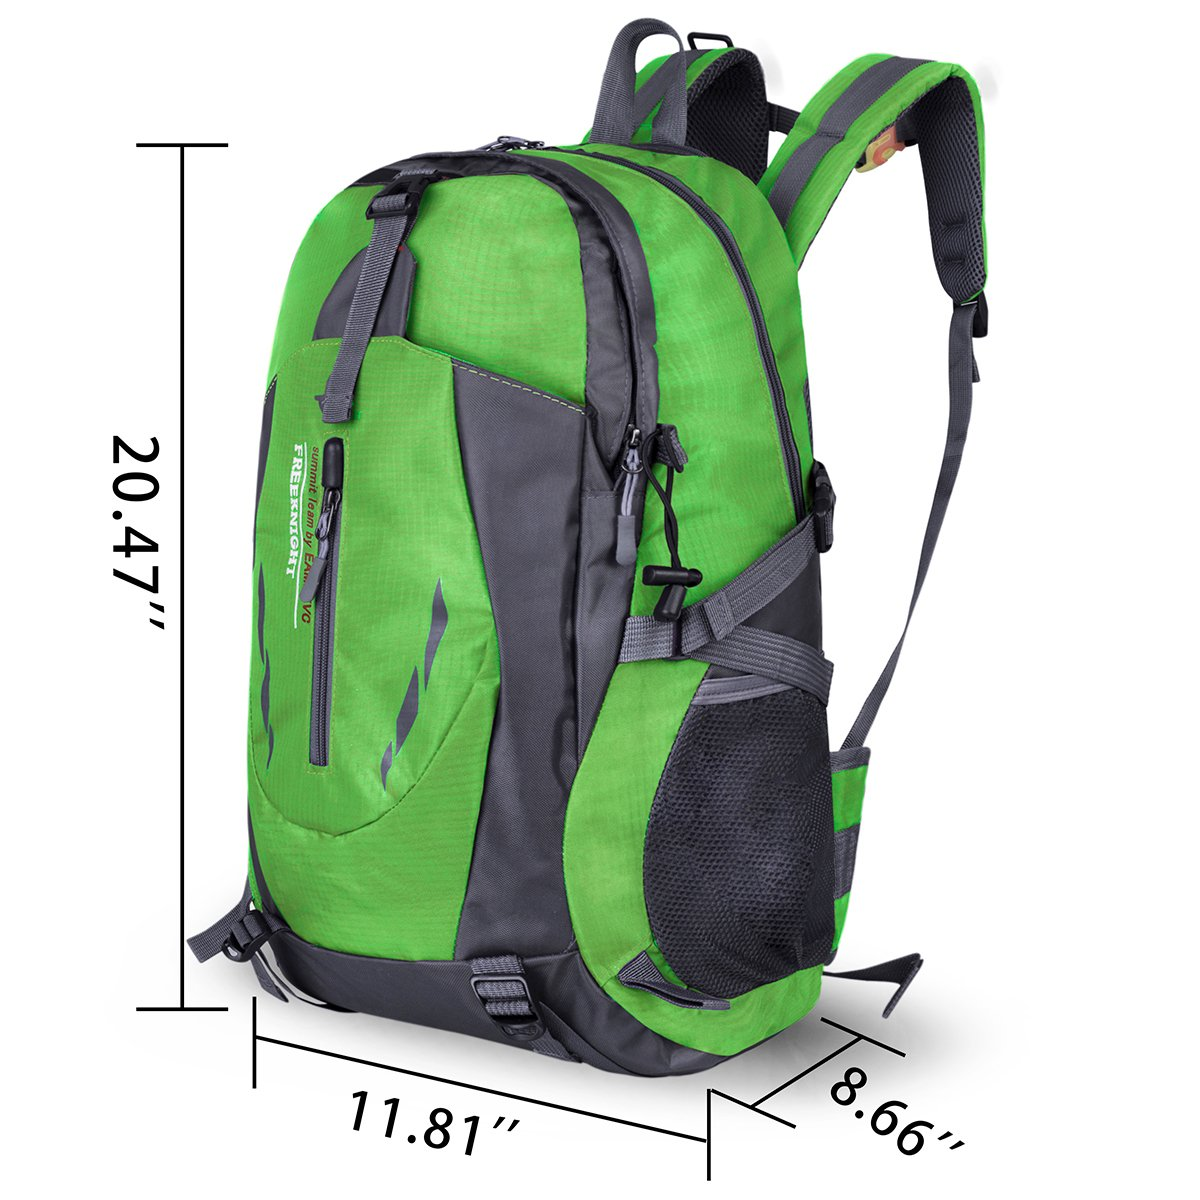 Water Resistant Sports Backpack Lightweight Outdoor Bag for Travel Hiking Climbing Camping Mountaineering (Green)